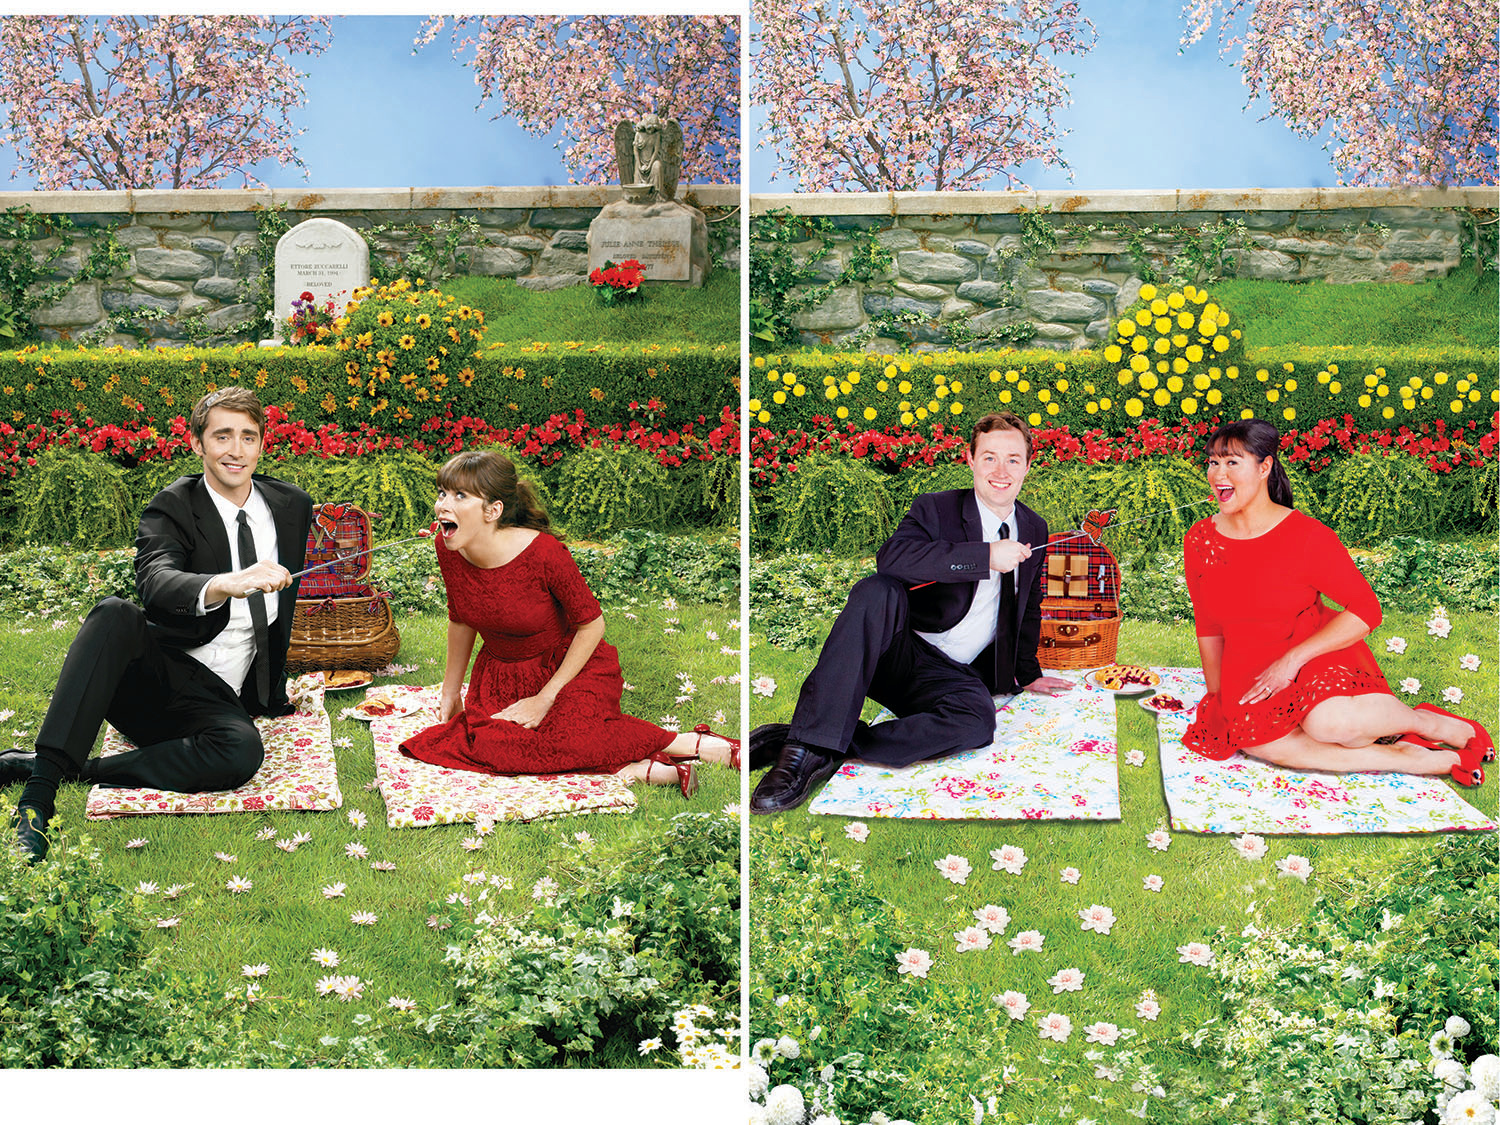 Pushing_Daisies_web